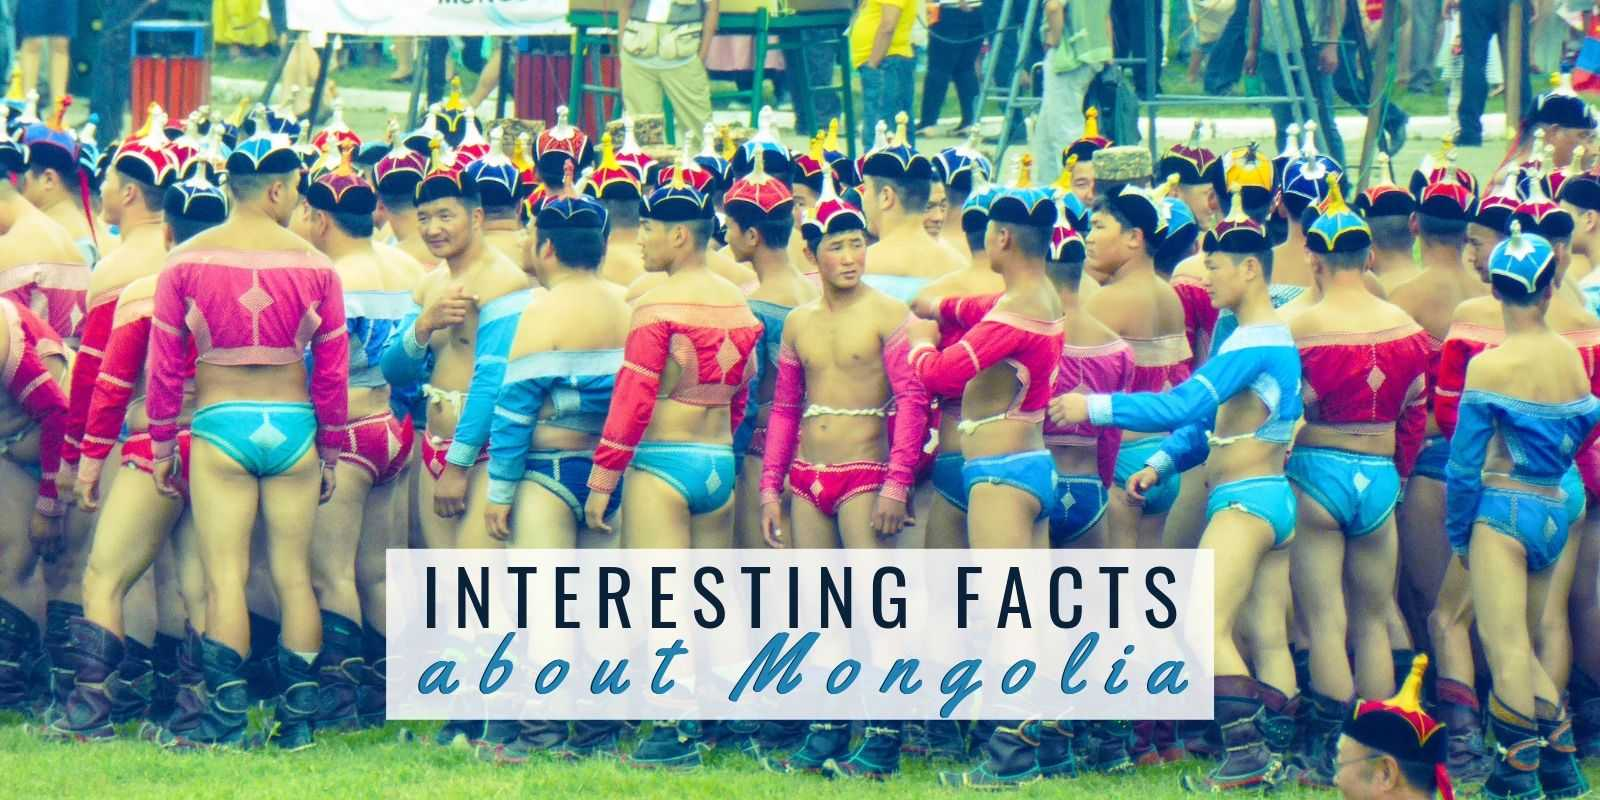 Interesting facts about Mongolia